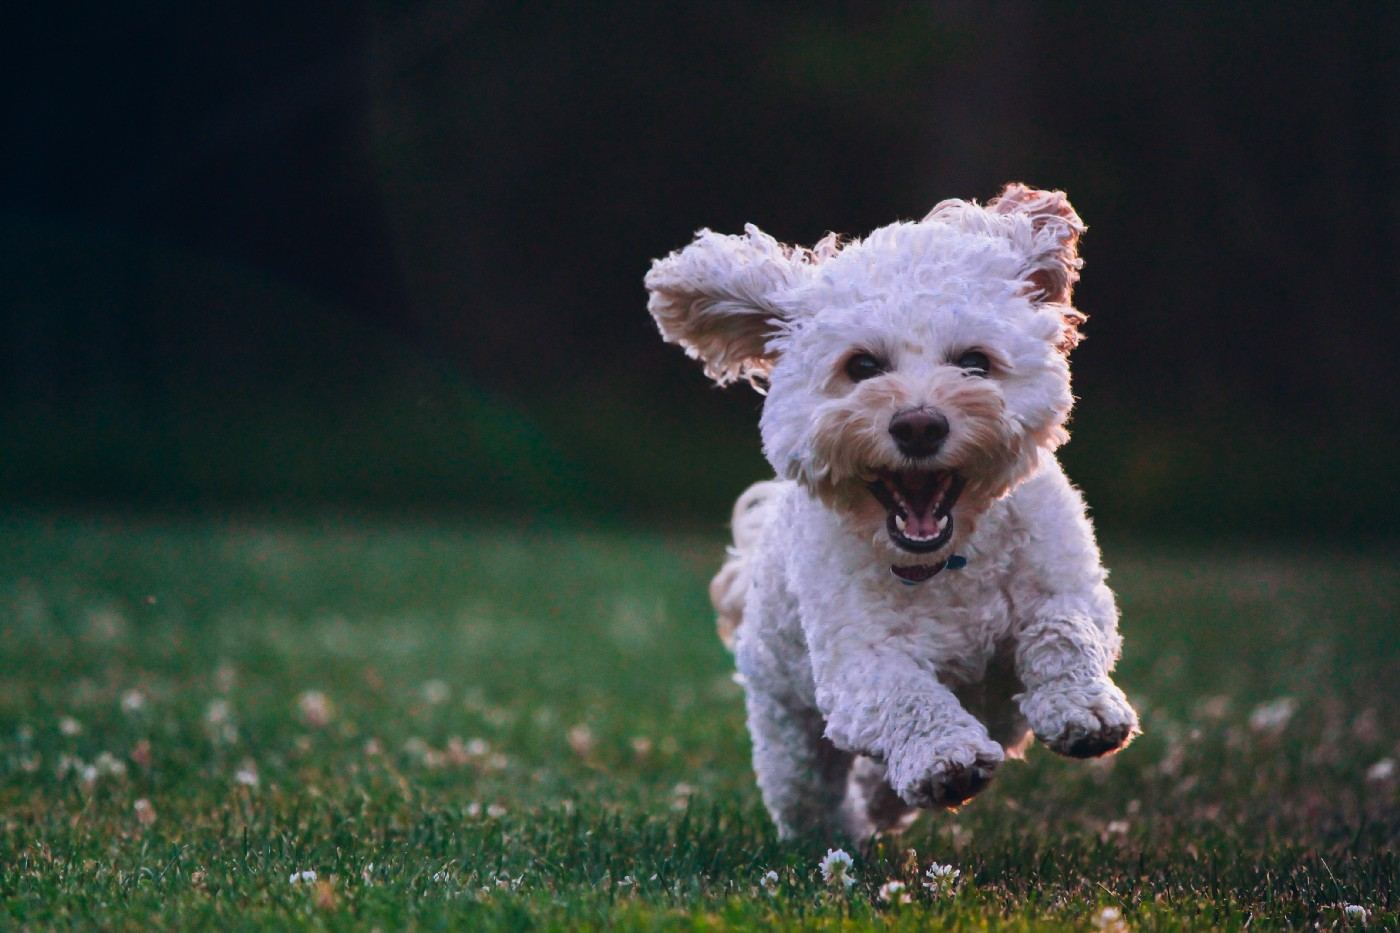 Build Your First Computer Vision Project — Dog Breed Classification | by Tuan Nguyen | Towards Data Science